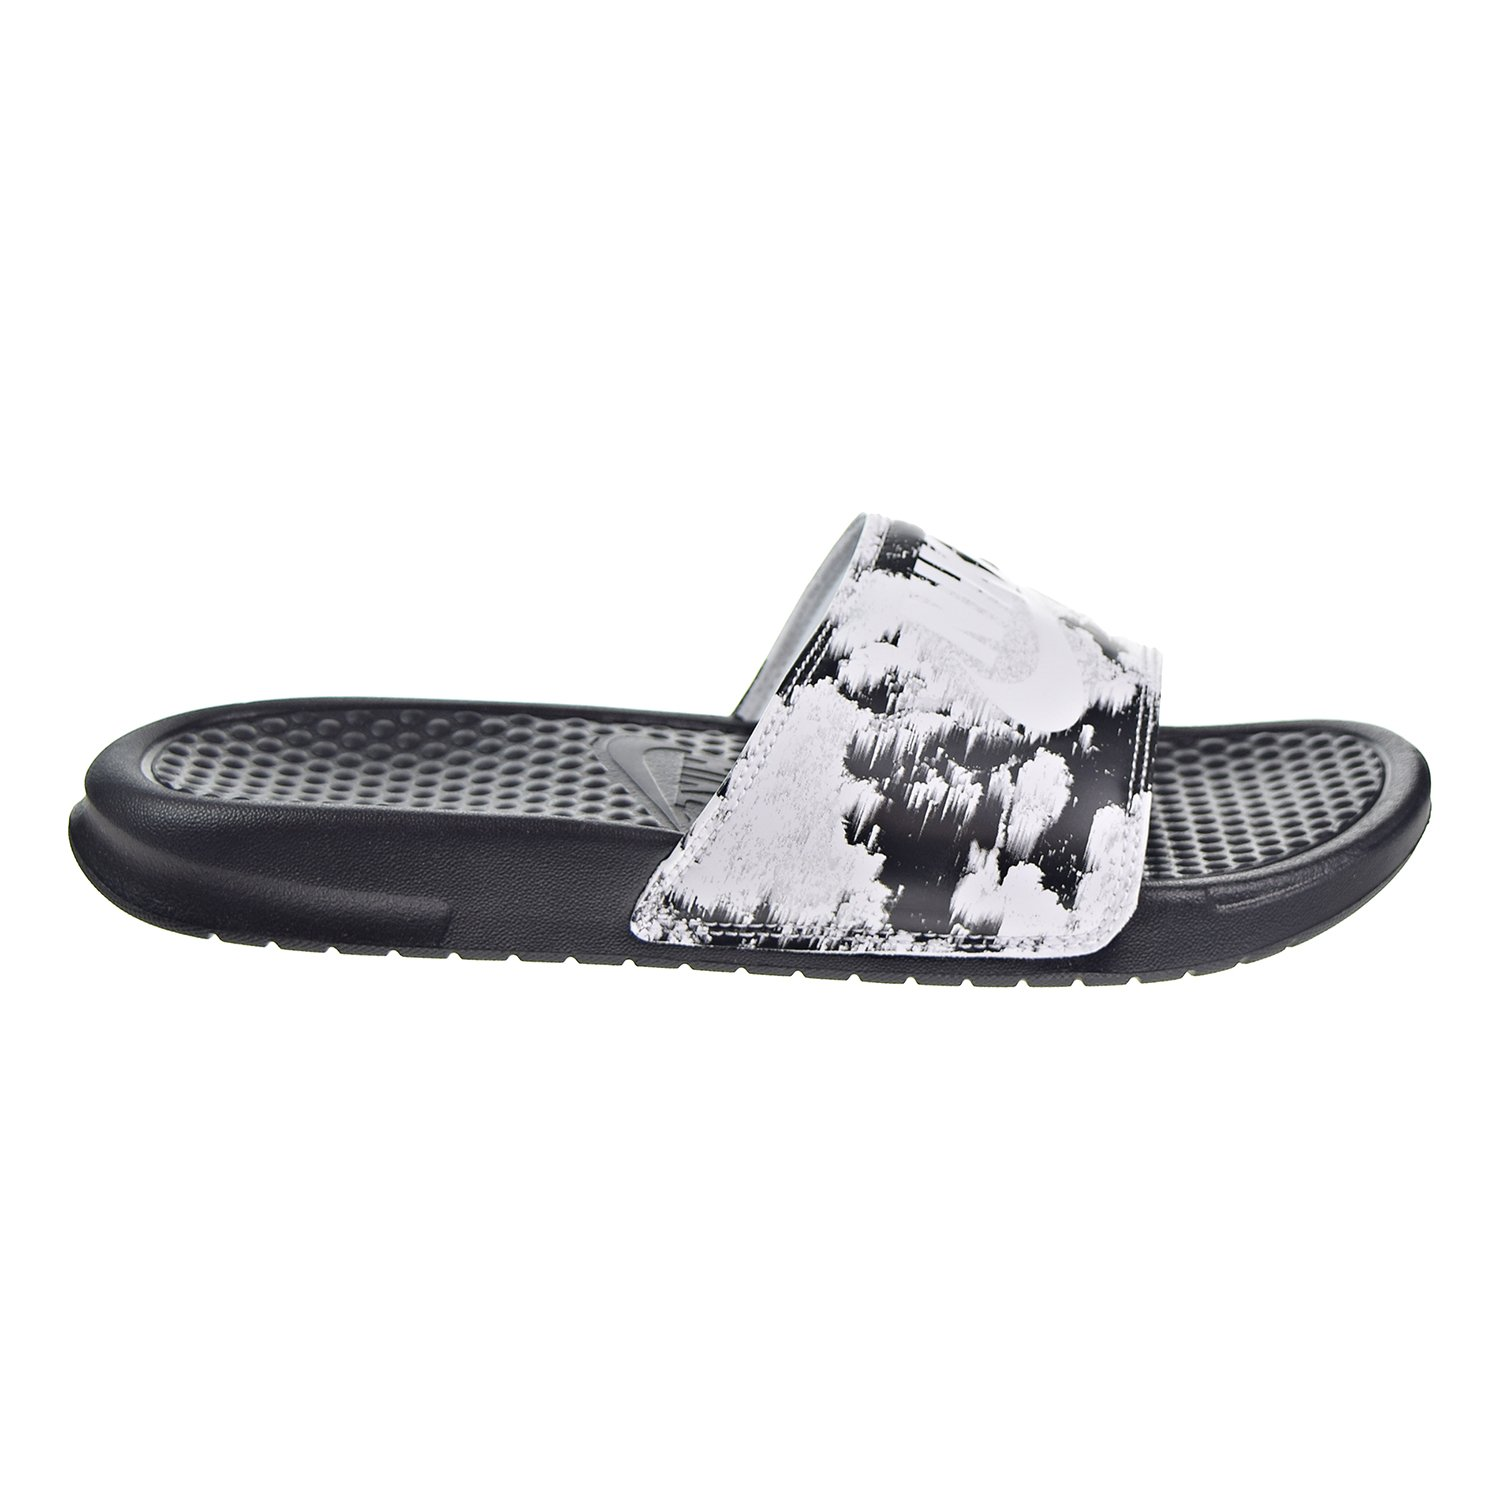 36c8c43030939 Amazon.com  Nike Womens Benassi JDI Print Slide Sandals Black White  618919-006 (9 M US)  Shoes